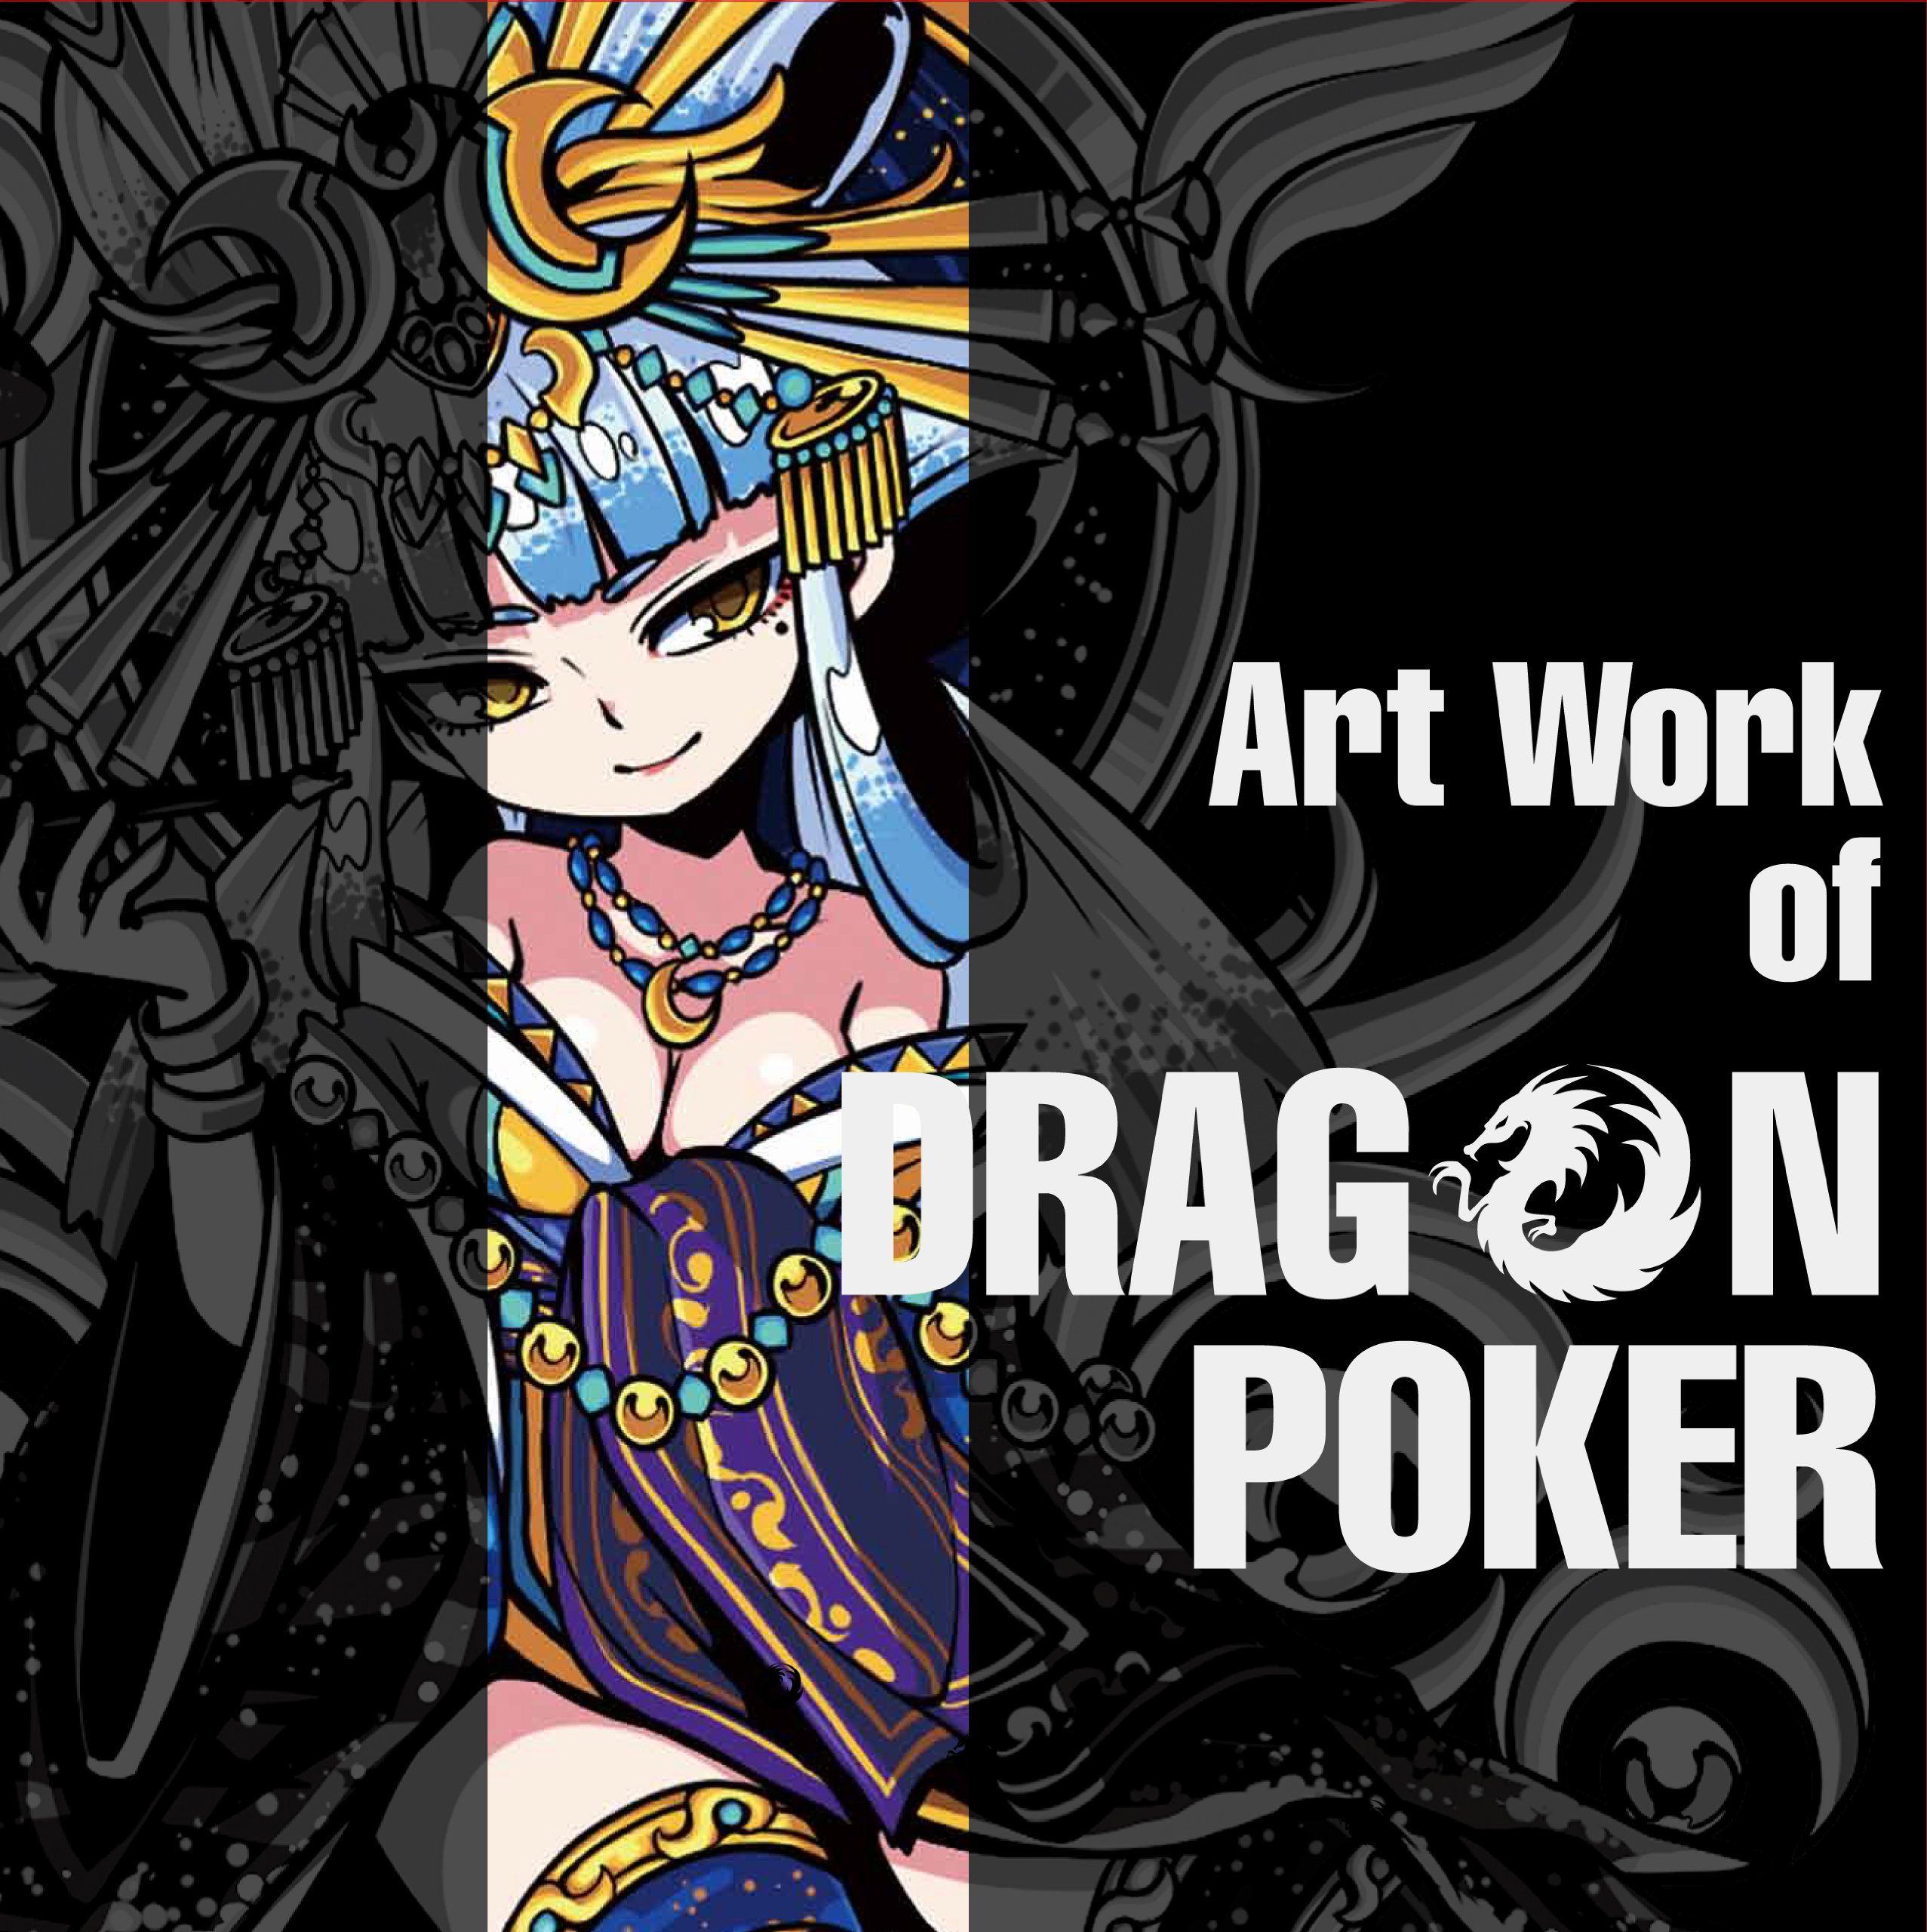 Artwork of dragon poker casino barriere trouville sur mer